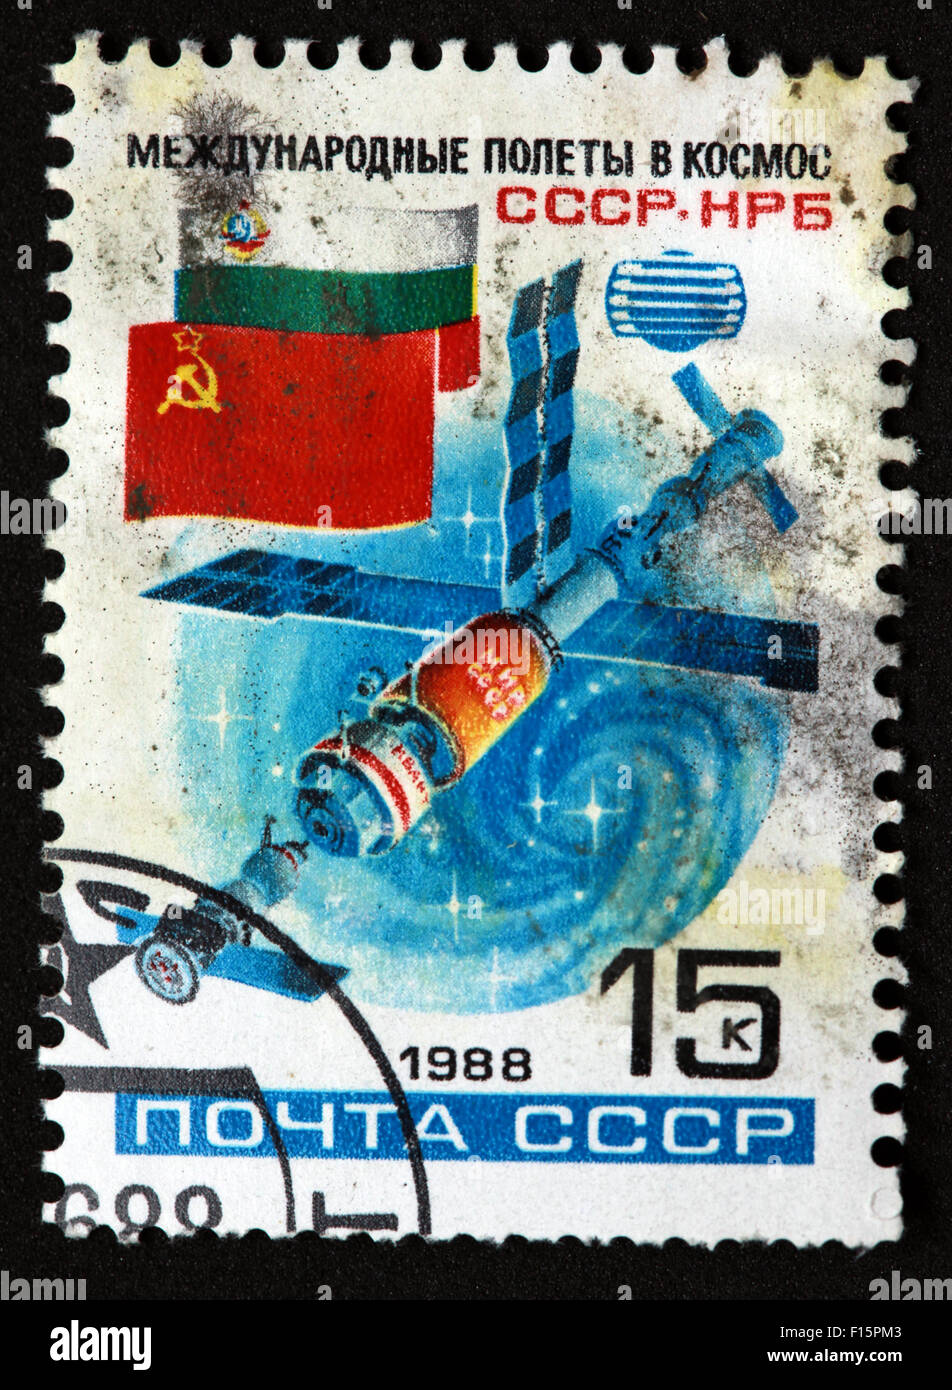 CCCP USSR HP5 space vehicle flags stamp 1988 stamp Stock Photo